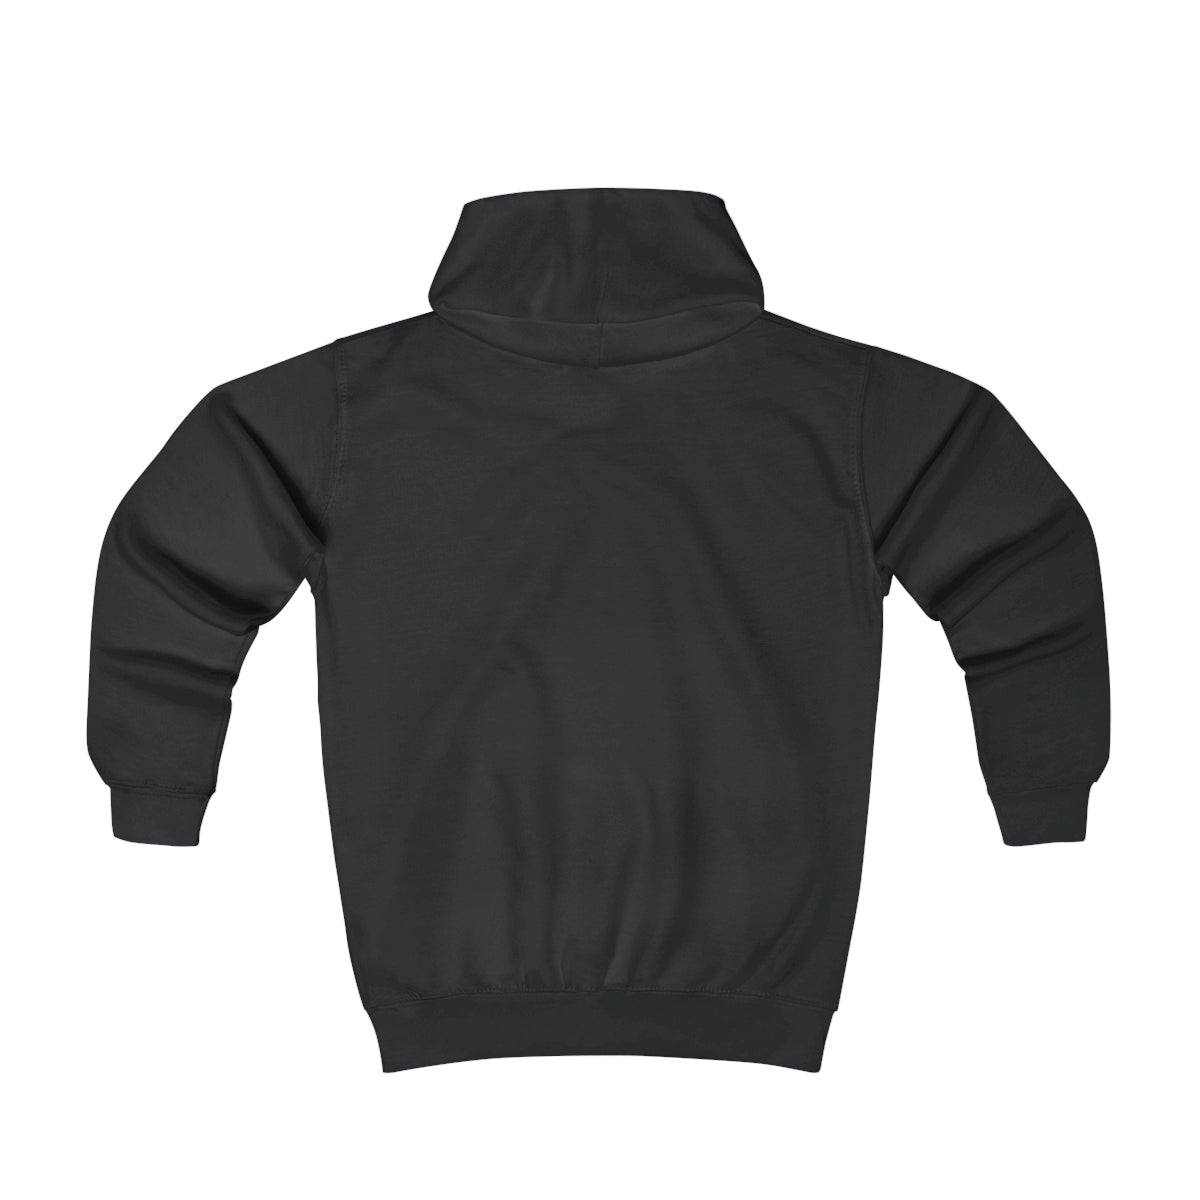 Rise Up BJJ Youth Hoodie - EverLegendary